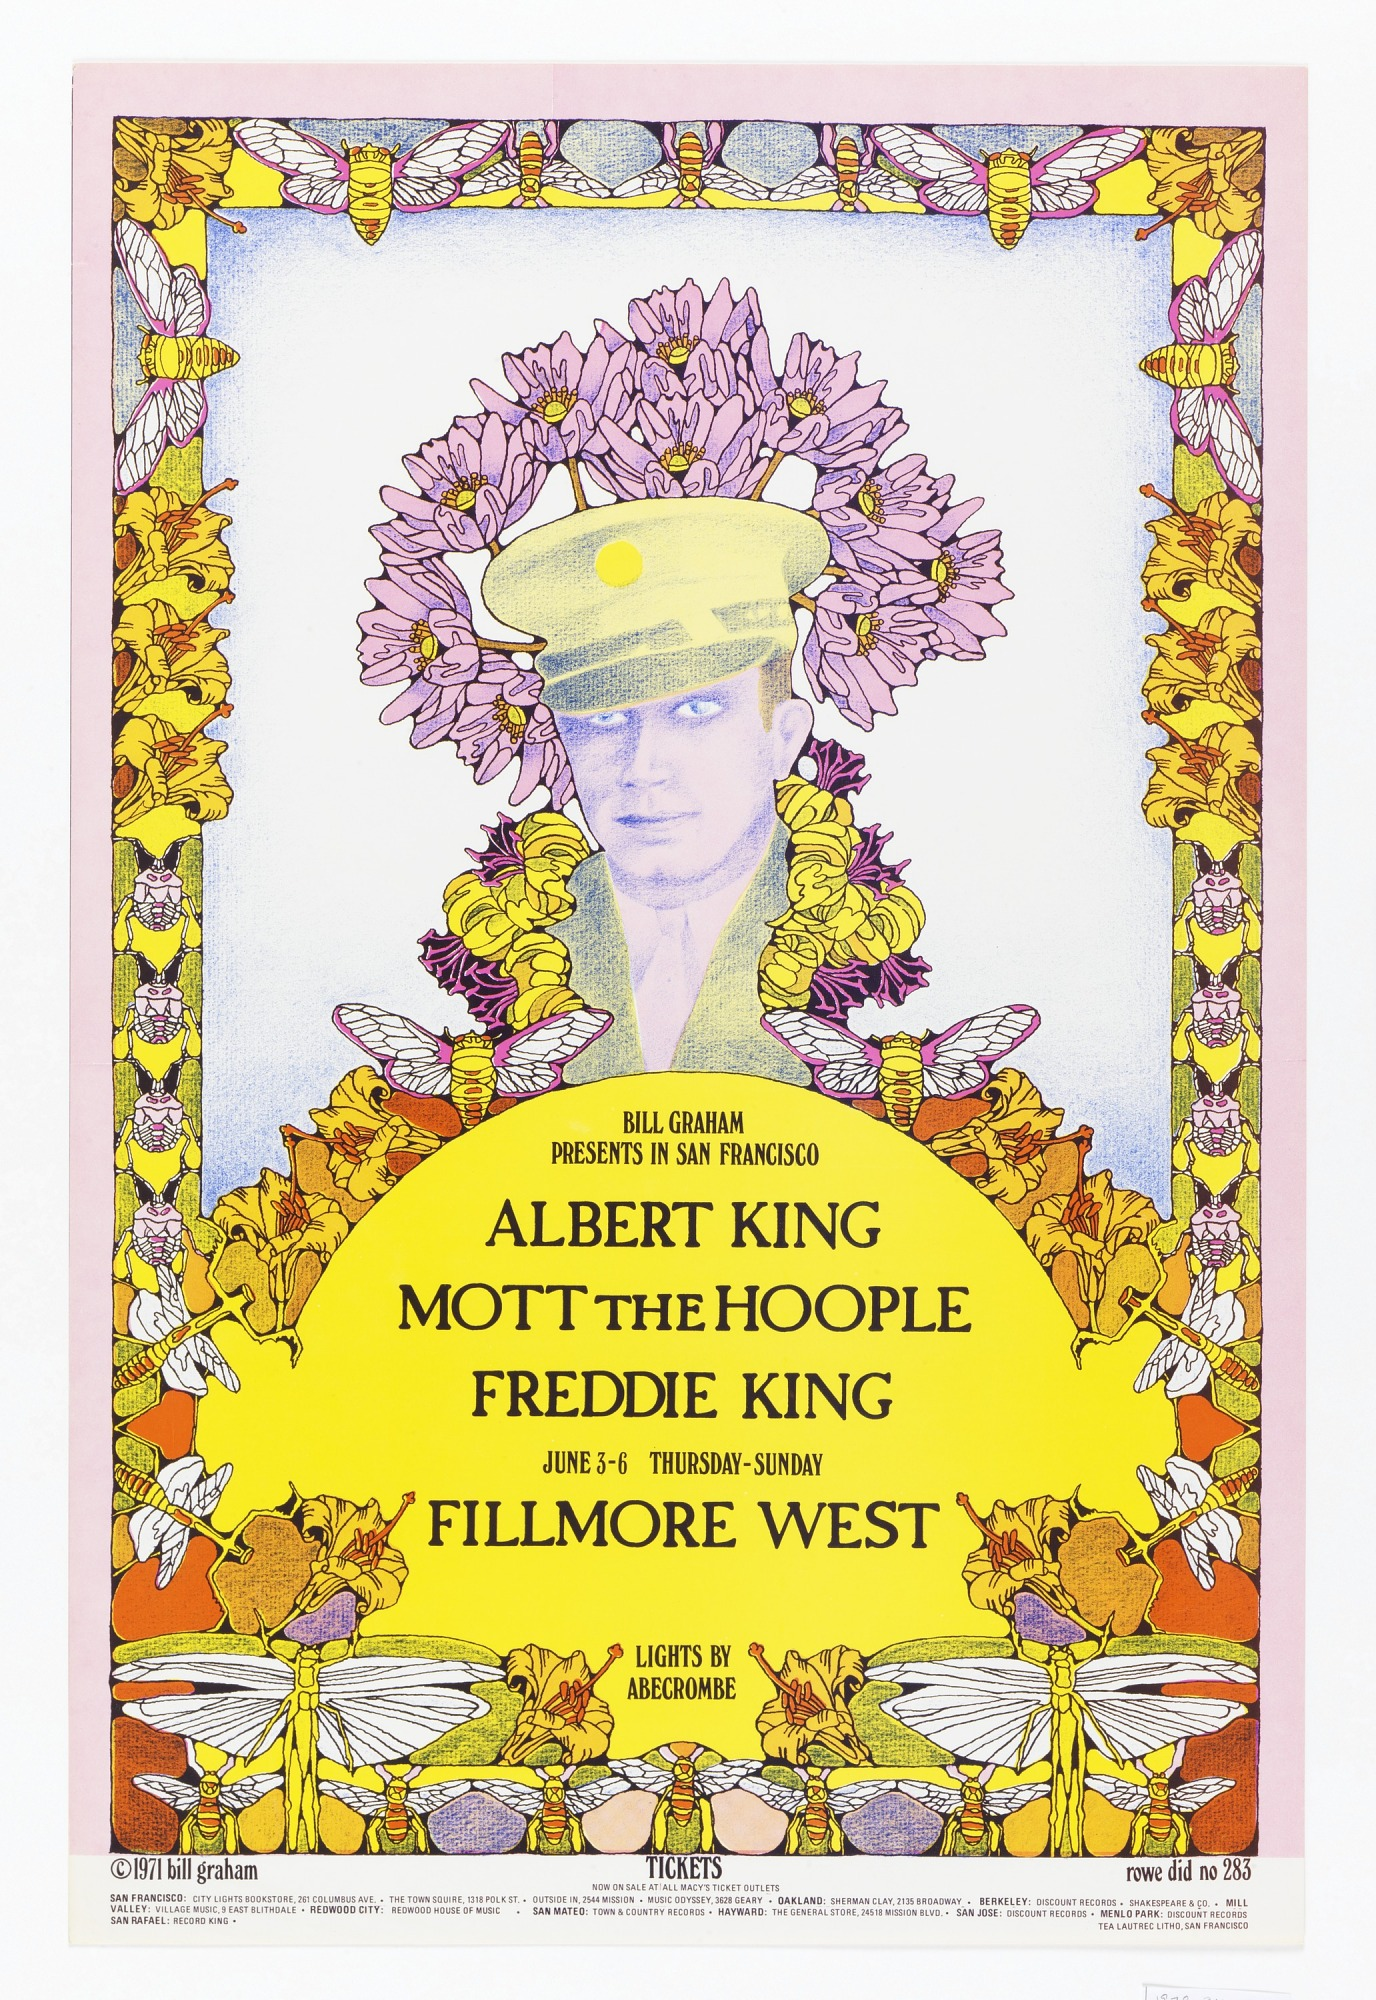 Image 1 for Albert King / Mott the Hoople / Freddie King